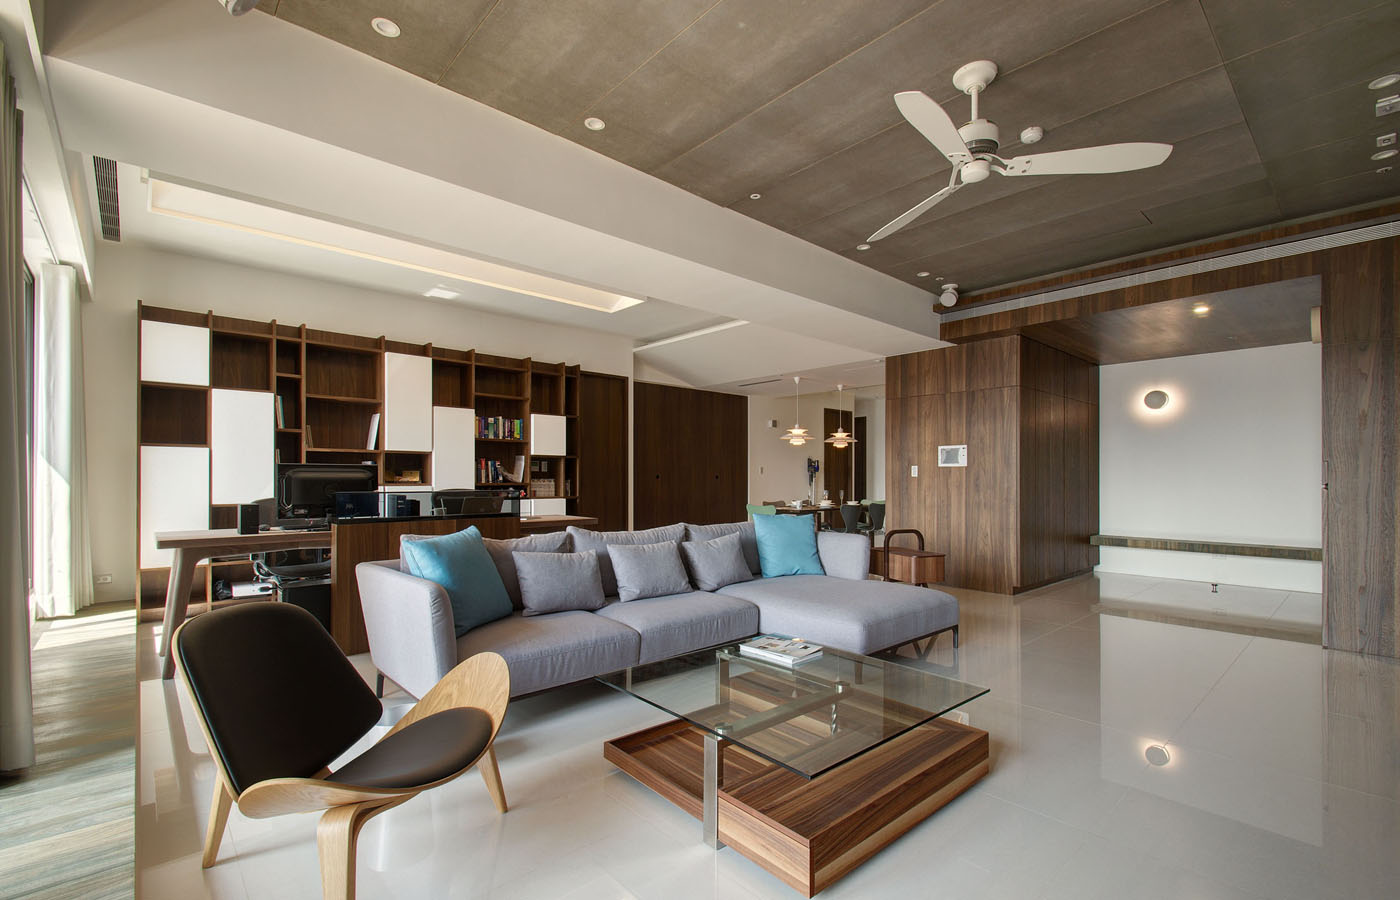 Modern apartment designs by phase6 design studio - Innovative design ideas for apartments ...